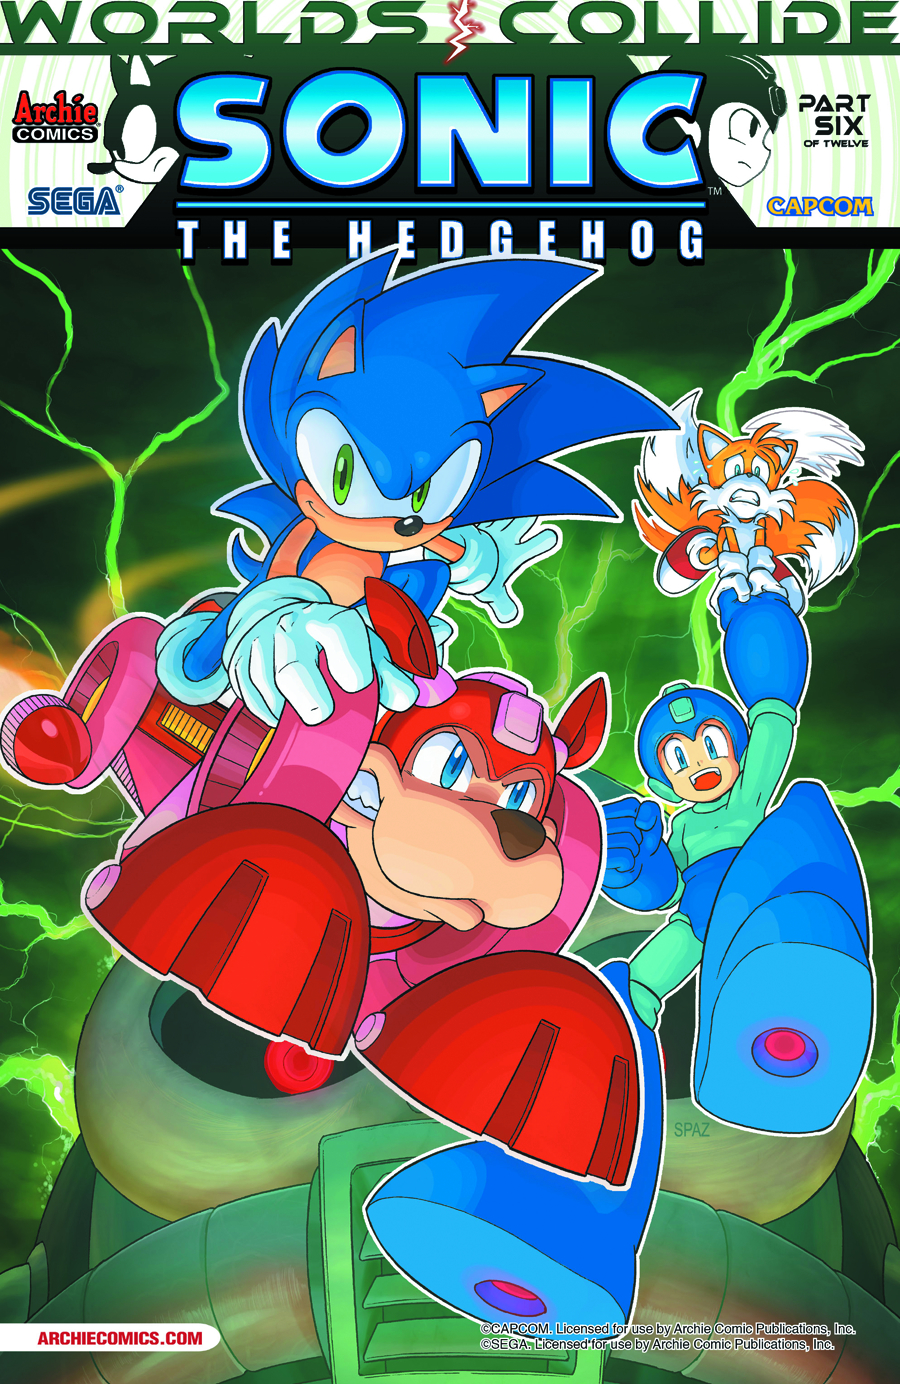 SONIC THE HEDGEHOG #249 REG CVR